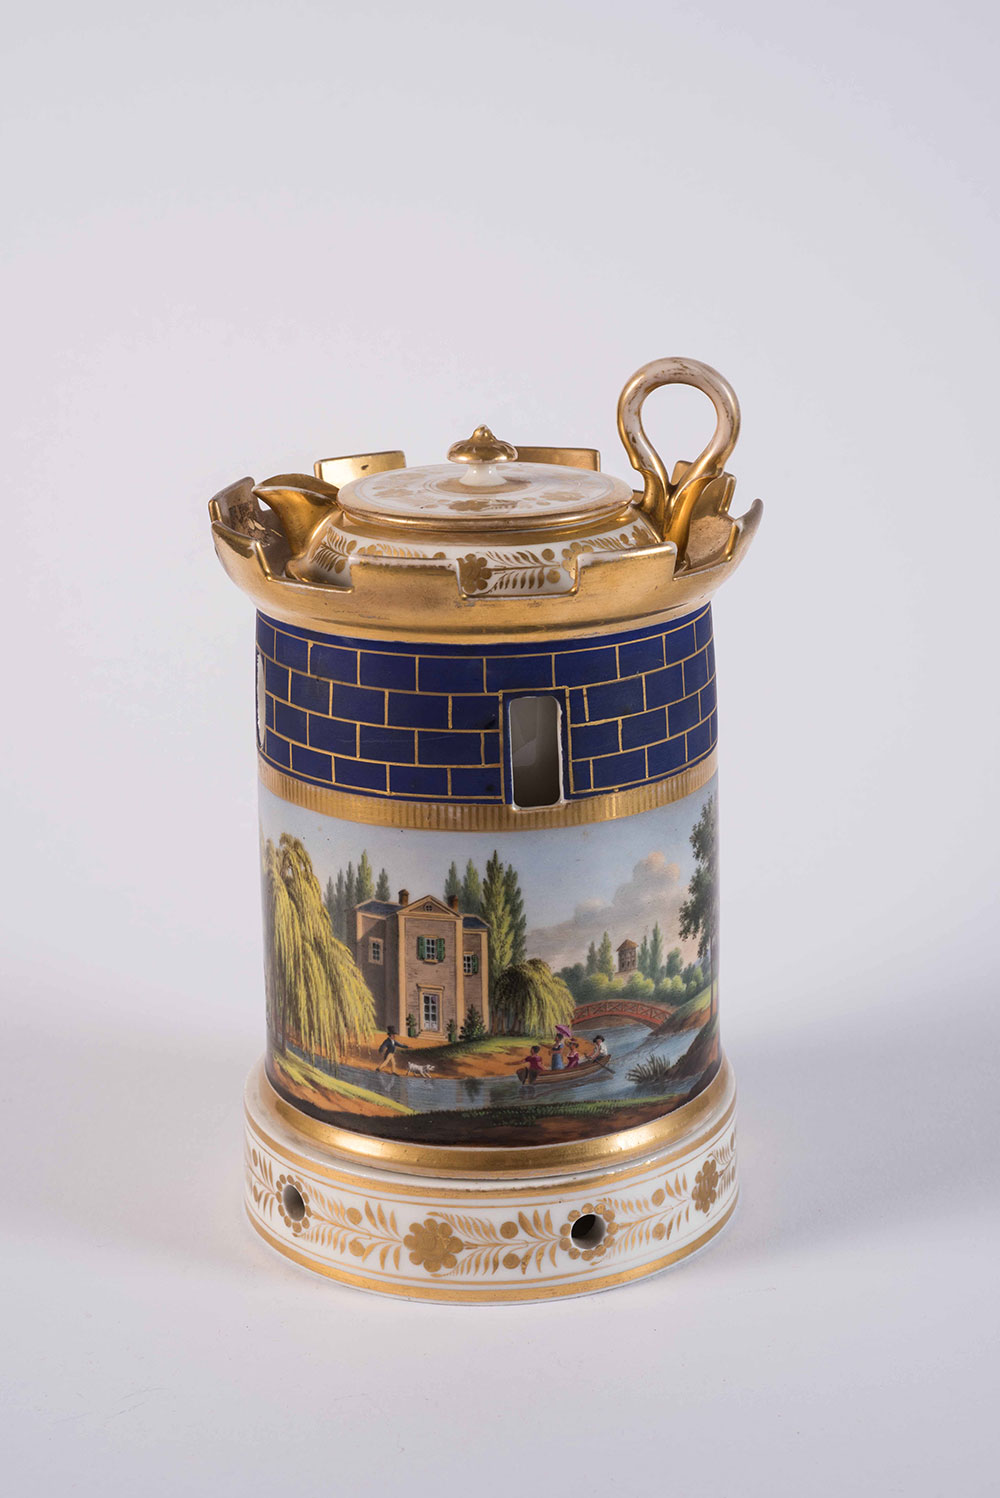 A French Early 19th Century Darte Freres Veilleuse Tea Warmer with Lidded Cup